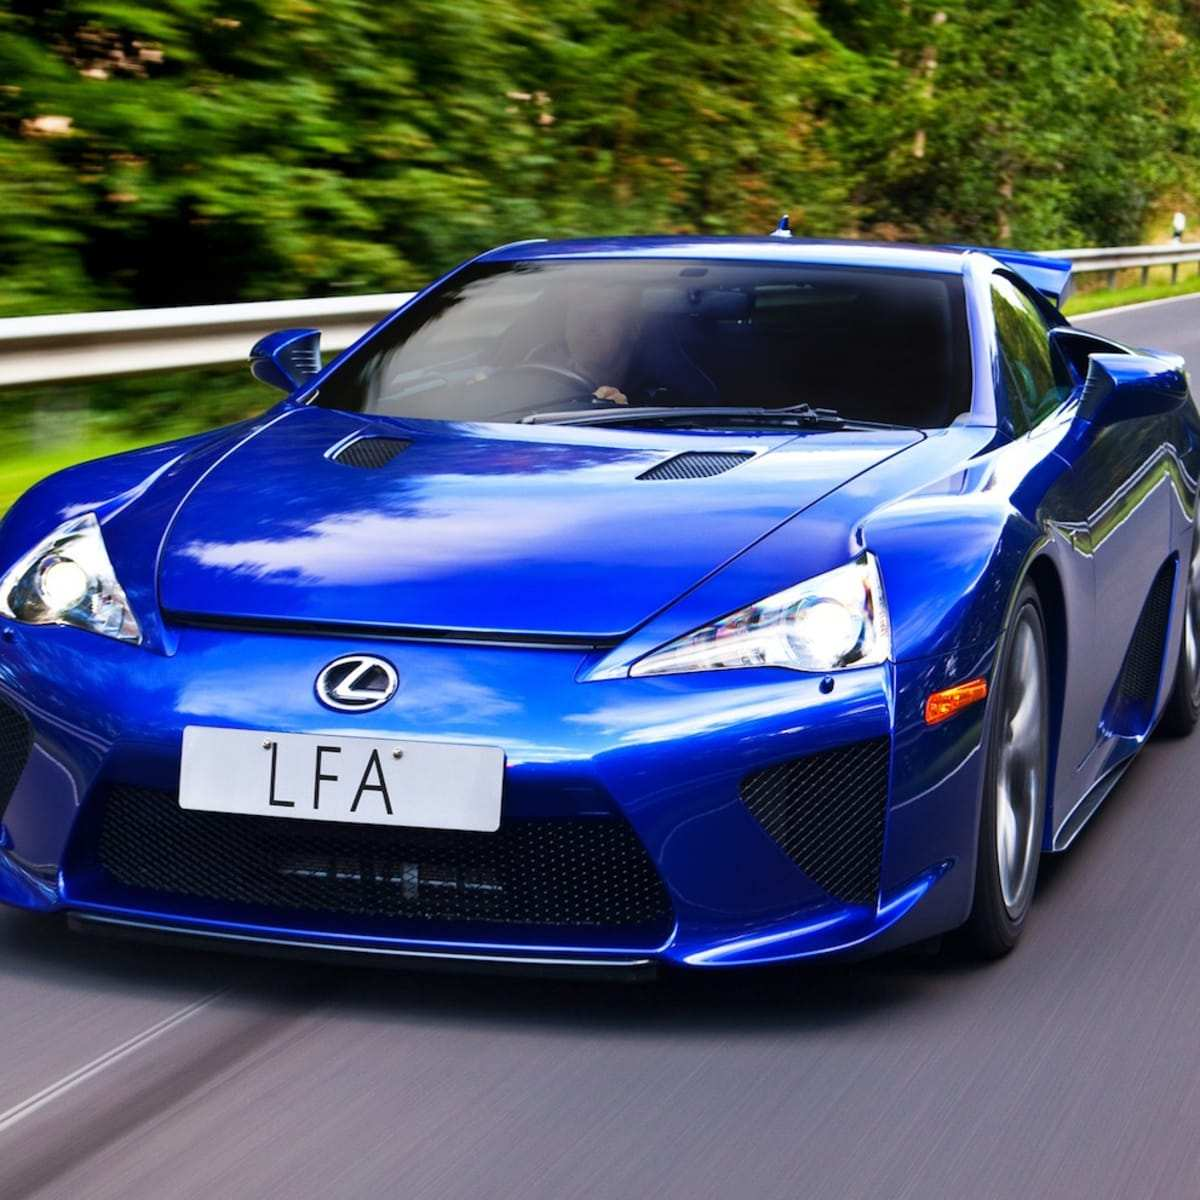 55 The Lexus Supercar 2020 Rumors with Lexus Supercar 2020